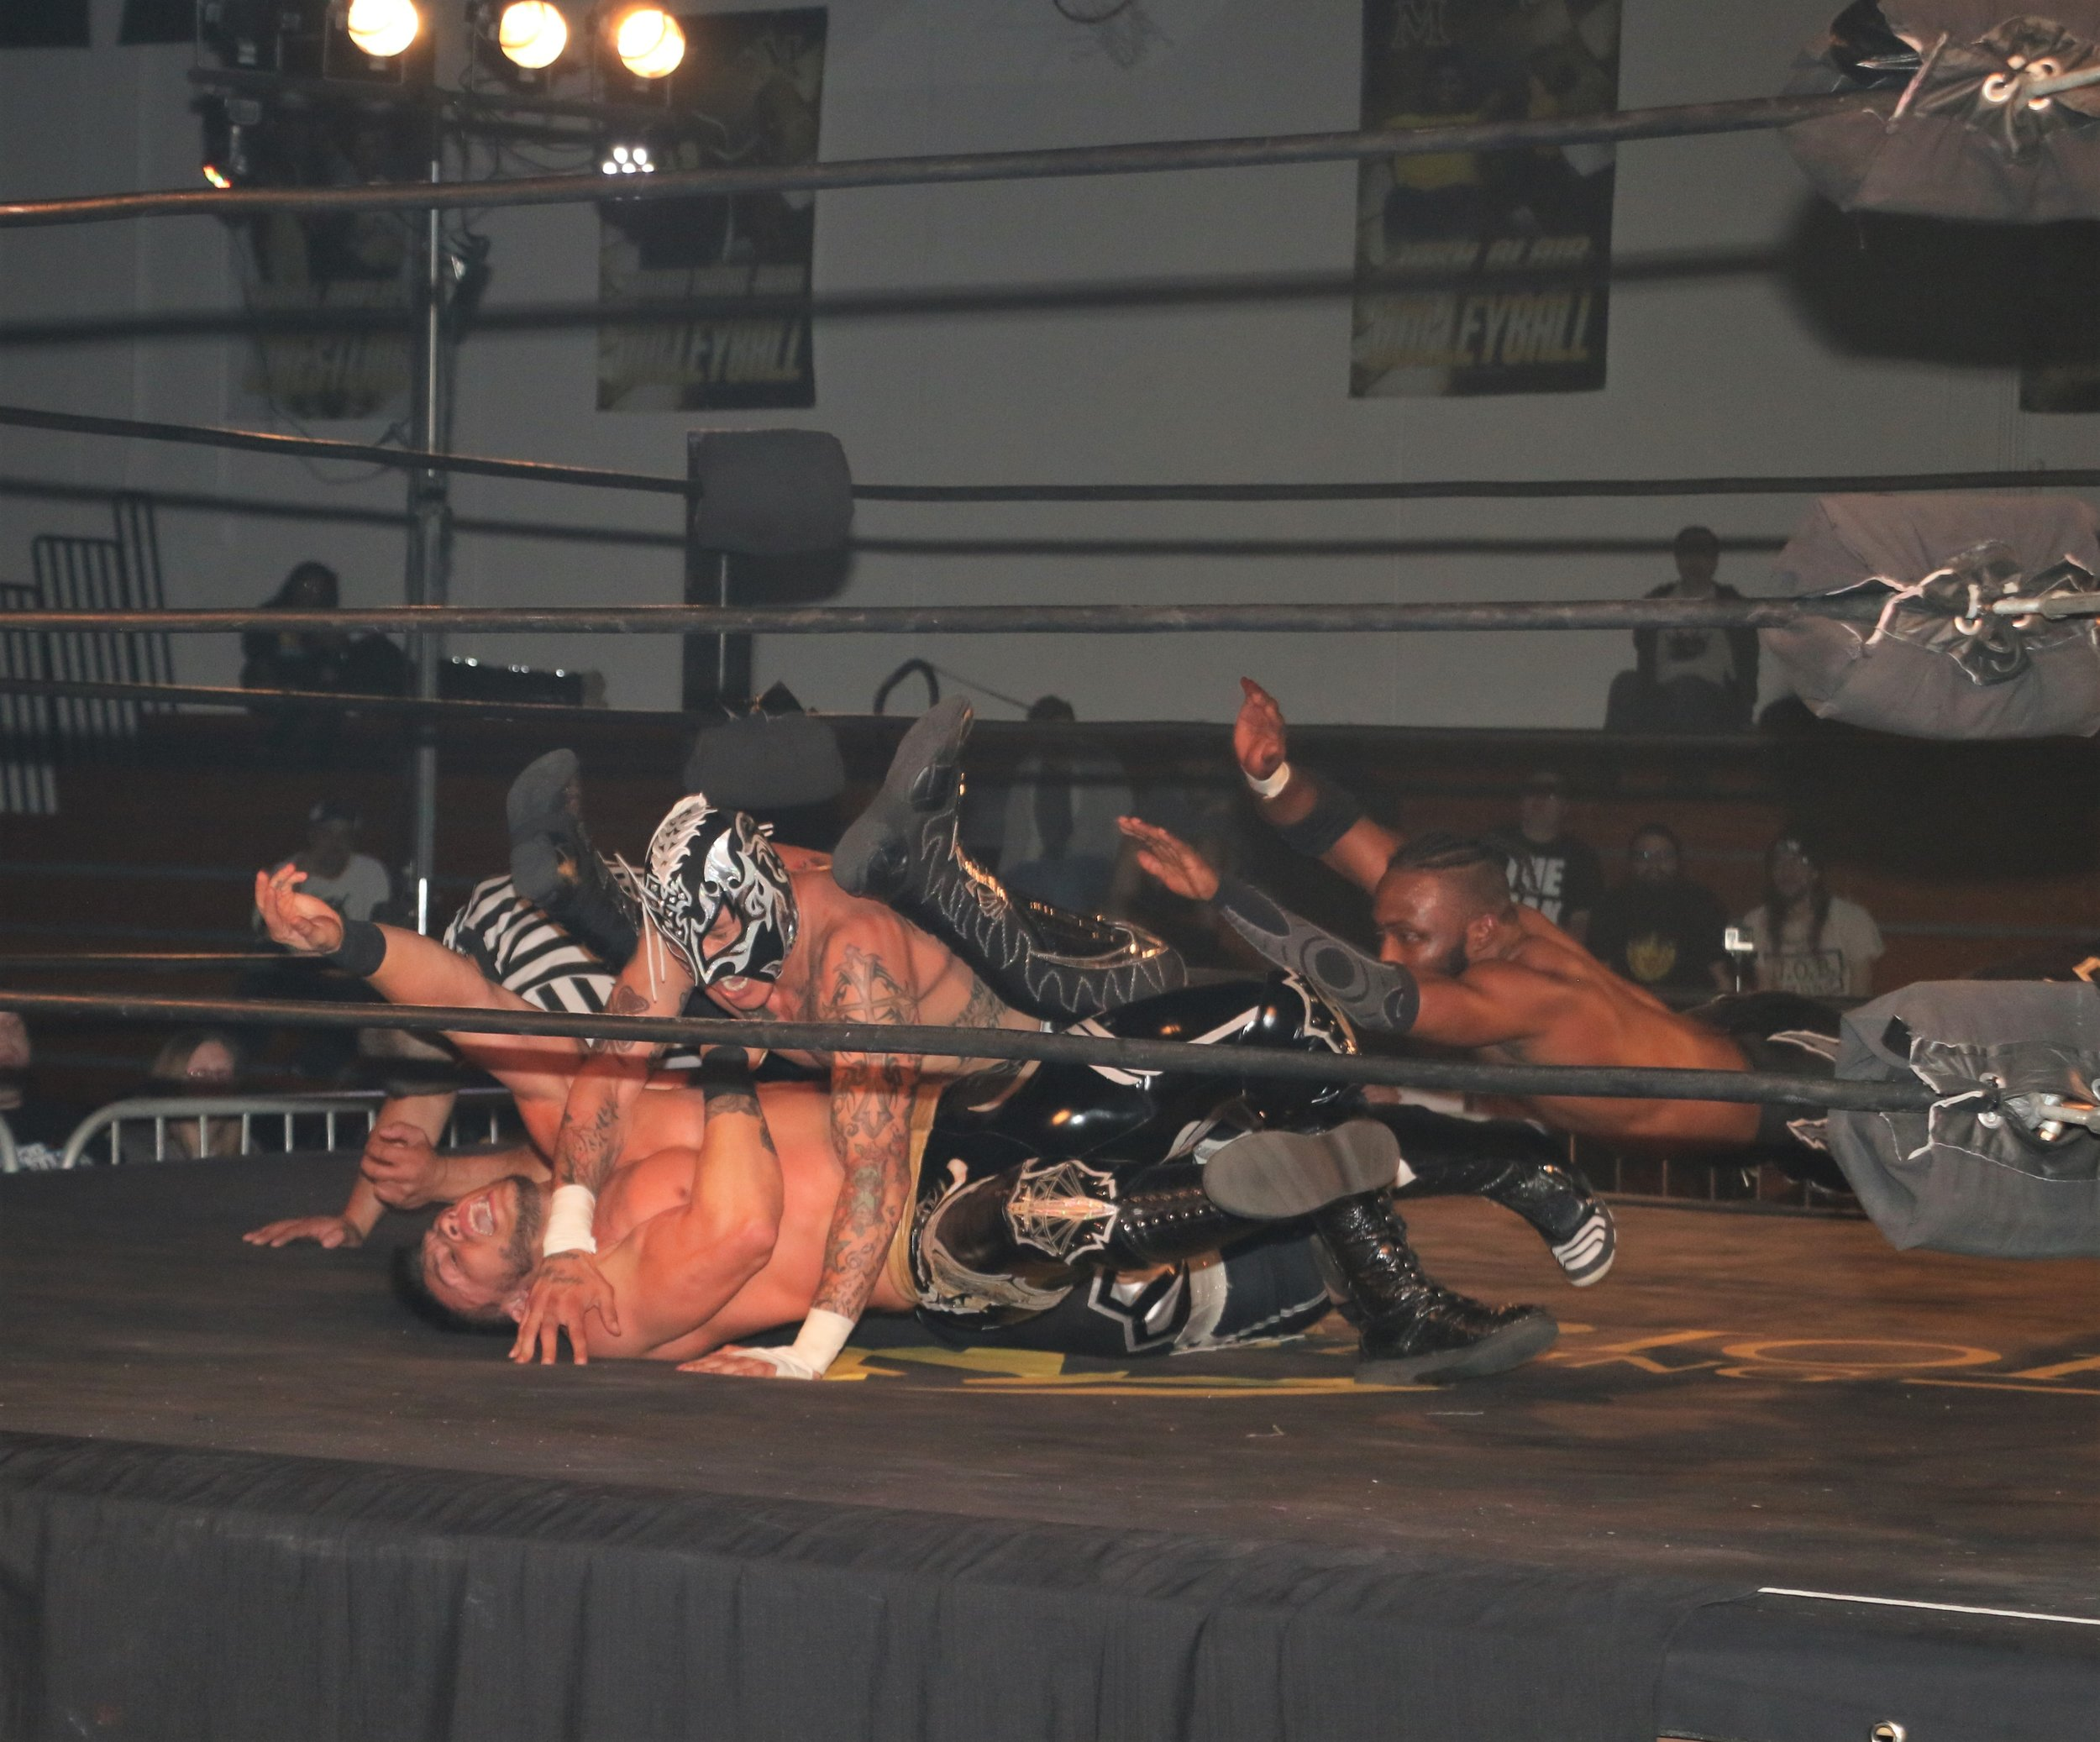 Fenix makes the cover on Daga as Kotto Brazil tries to break up the pinfall.